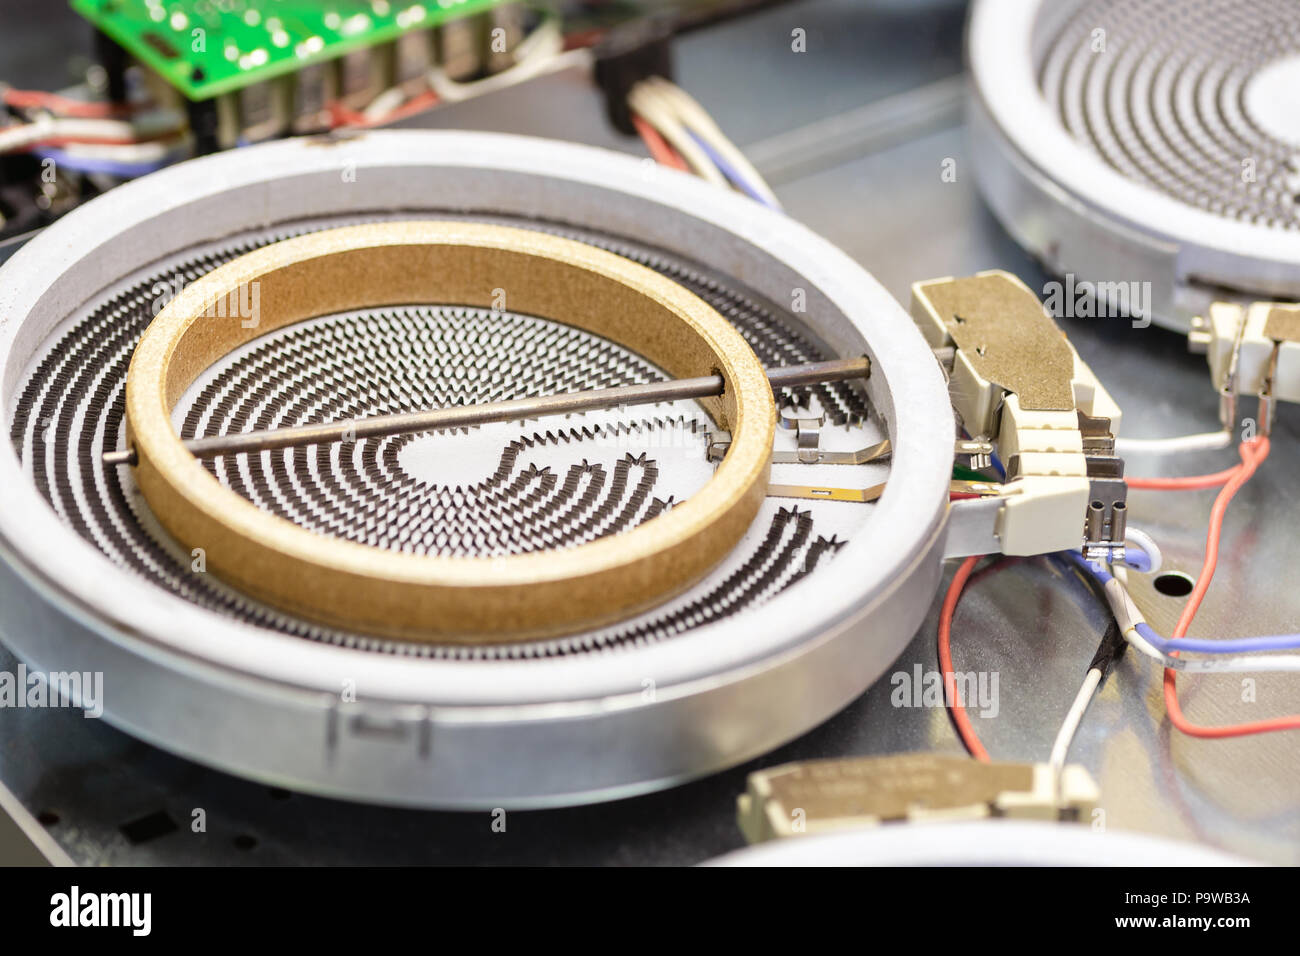 hight resolution of close up detail heating coil spiral of diassembled cooking stove cooktop repair and maintenance of house kitchen appliance at electric fixing worksho